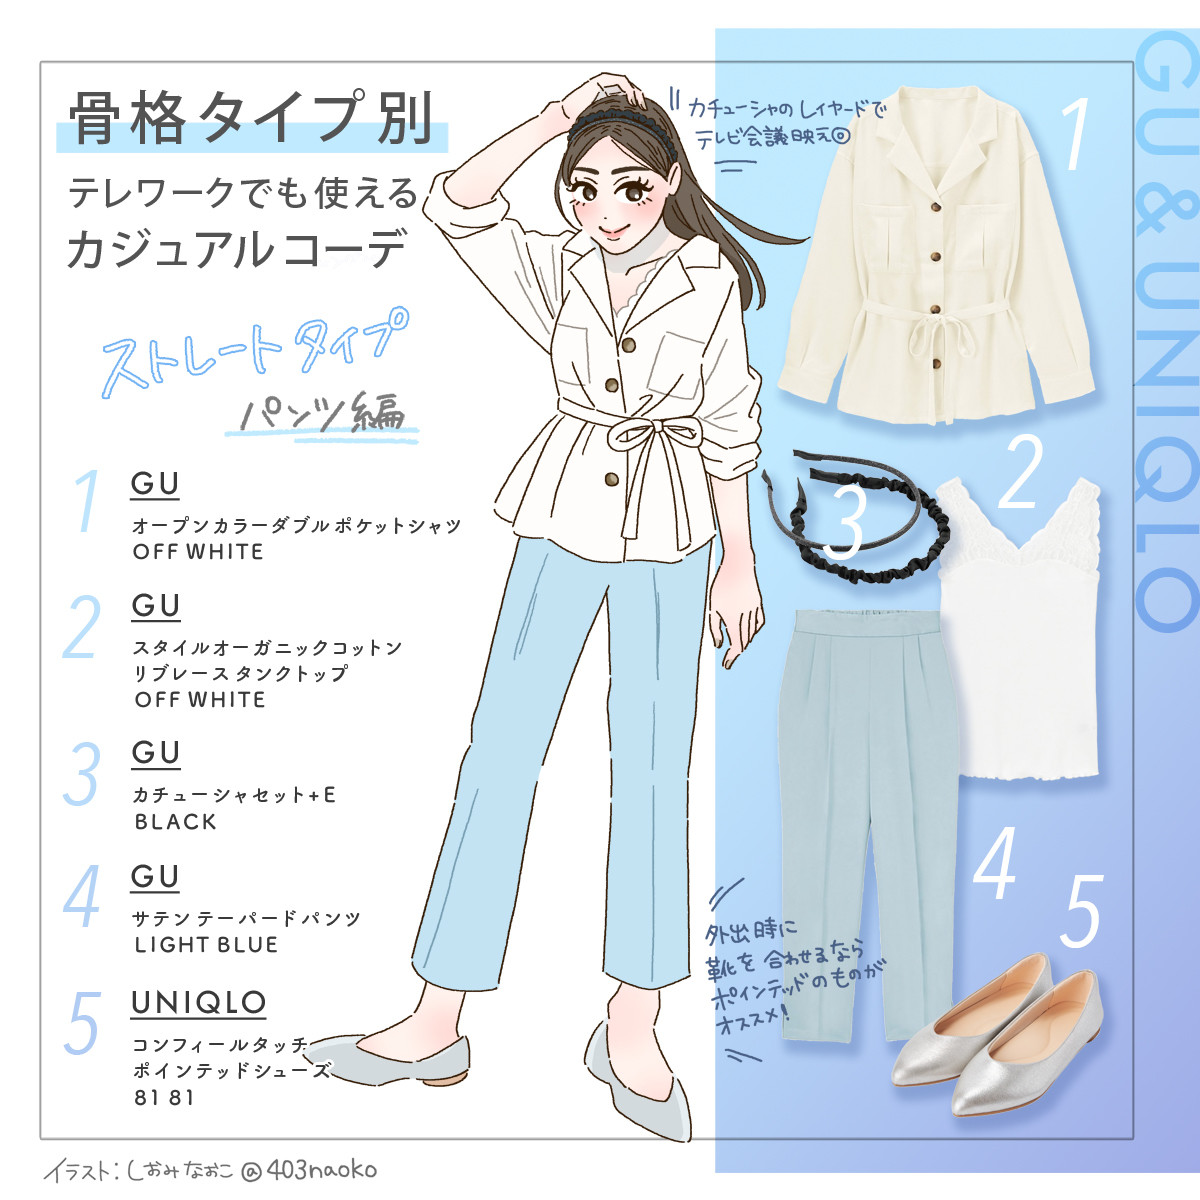 Photo of At the 5th GU & UNIQLO, Petit Placode for Working Girls[骨格ストレート]A casual outfit that can be used for teleworking